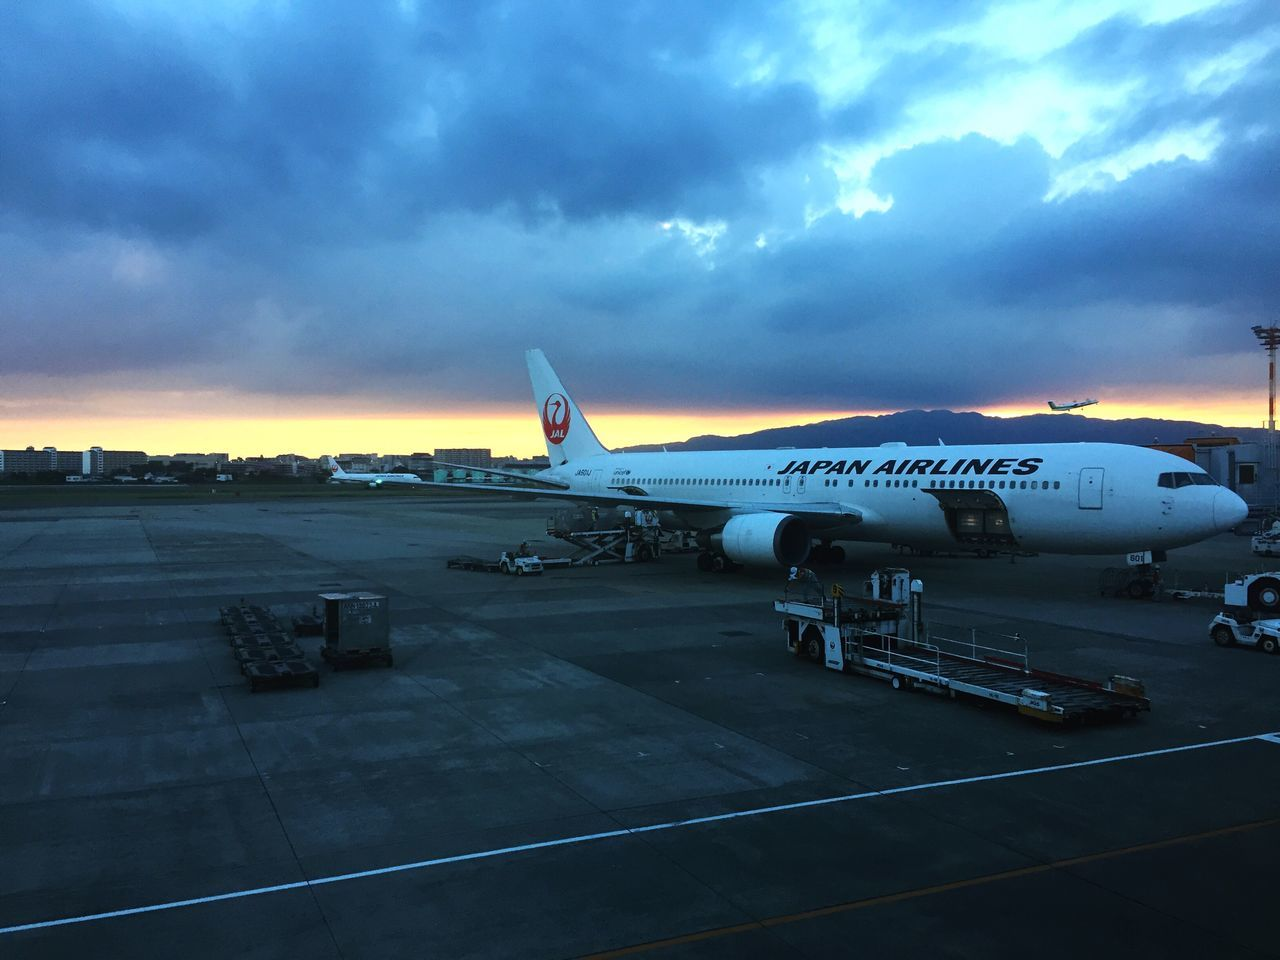 cloud - sky, airplane, transportation, airport runway, sky, sunset, airport, air vehicle, no people, mode of transport, outdoors, runway, commercial airplane, day, nature, airplane wing